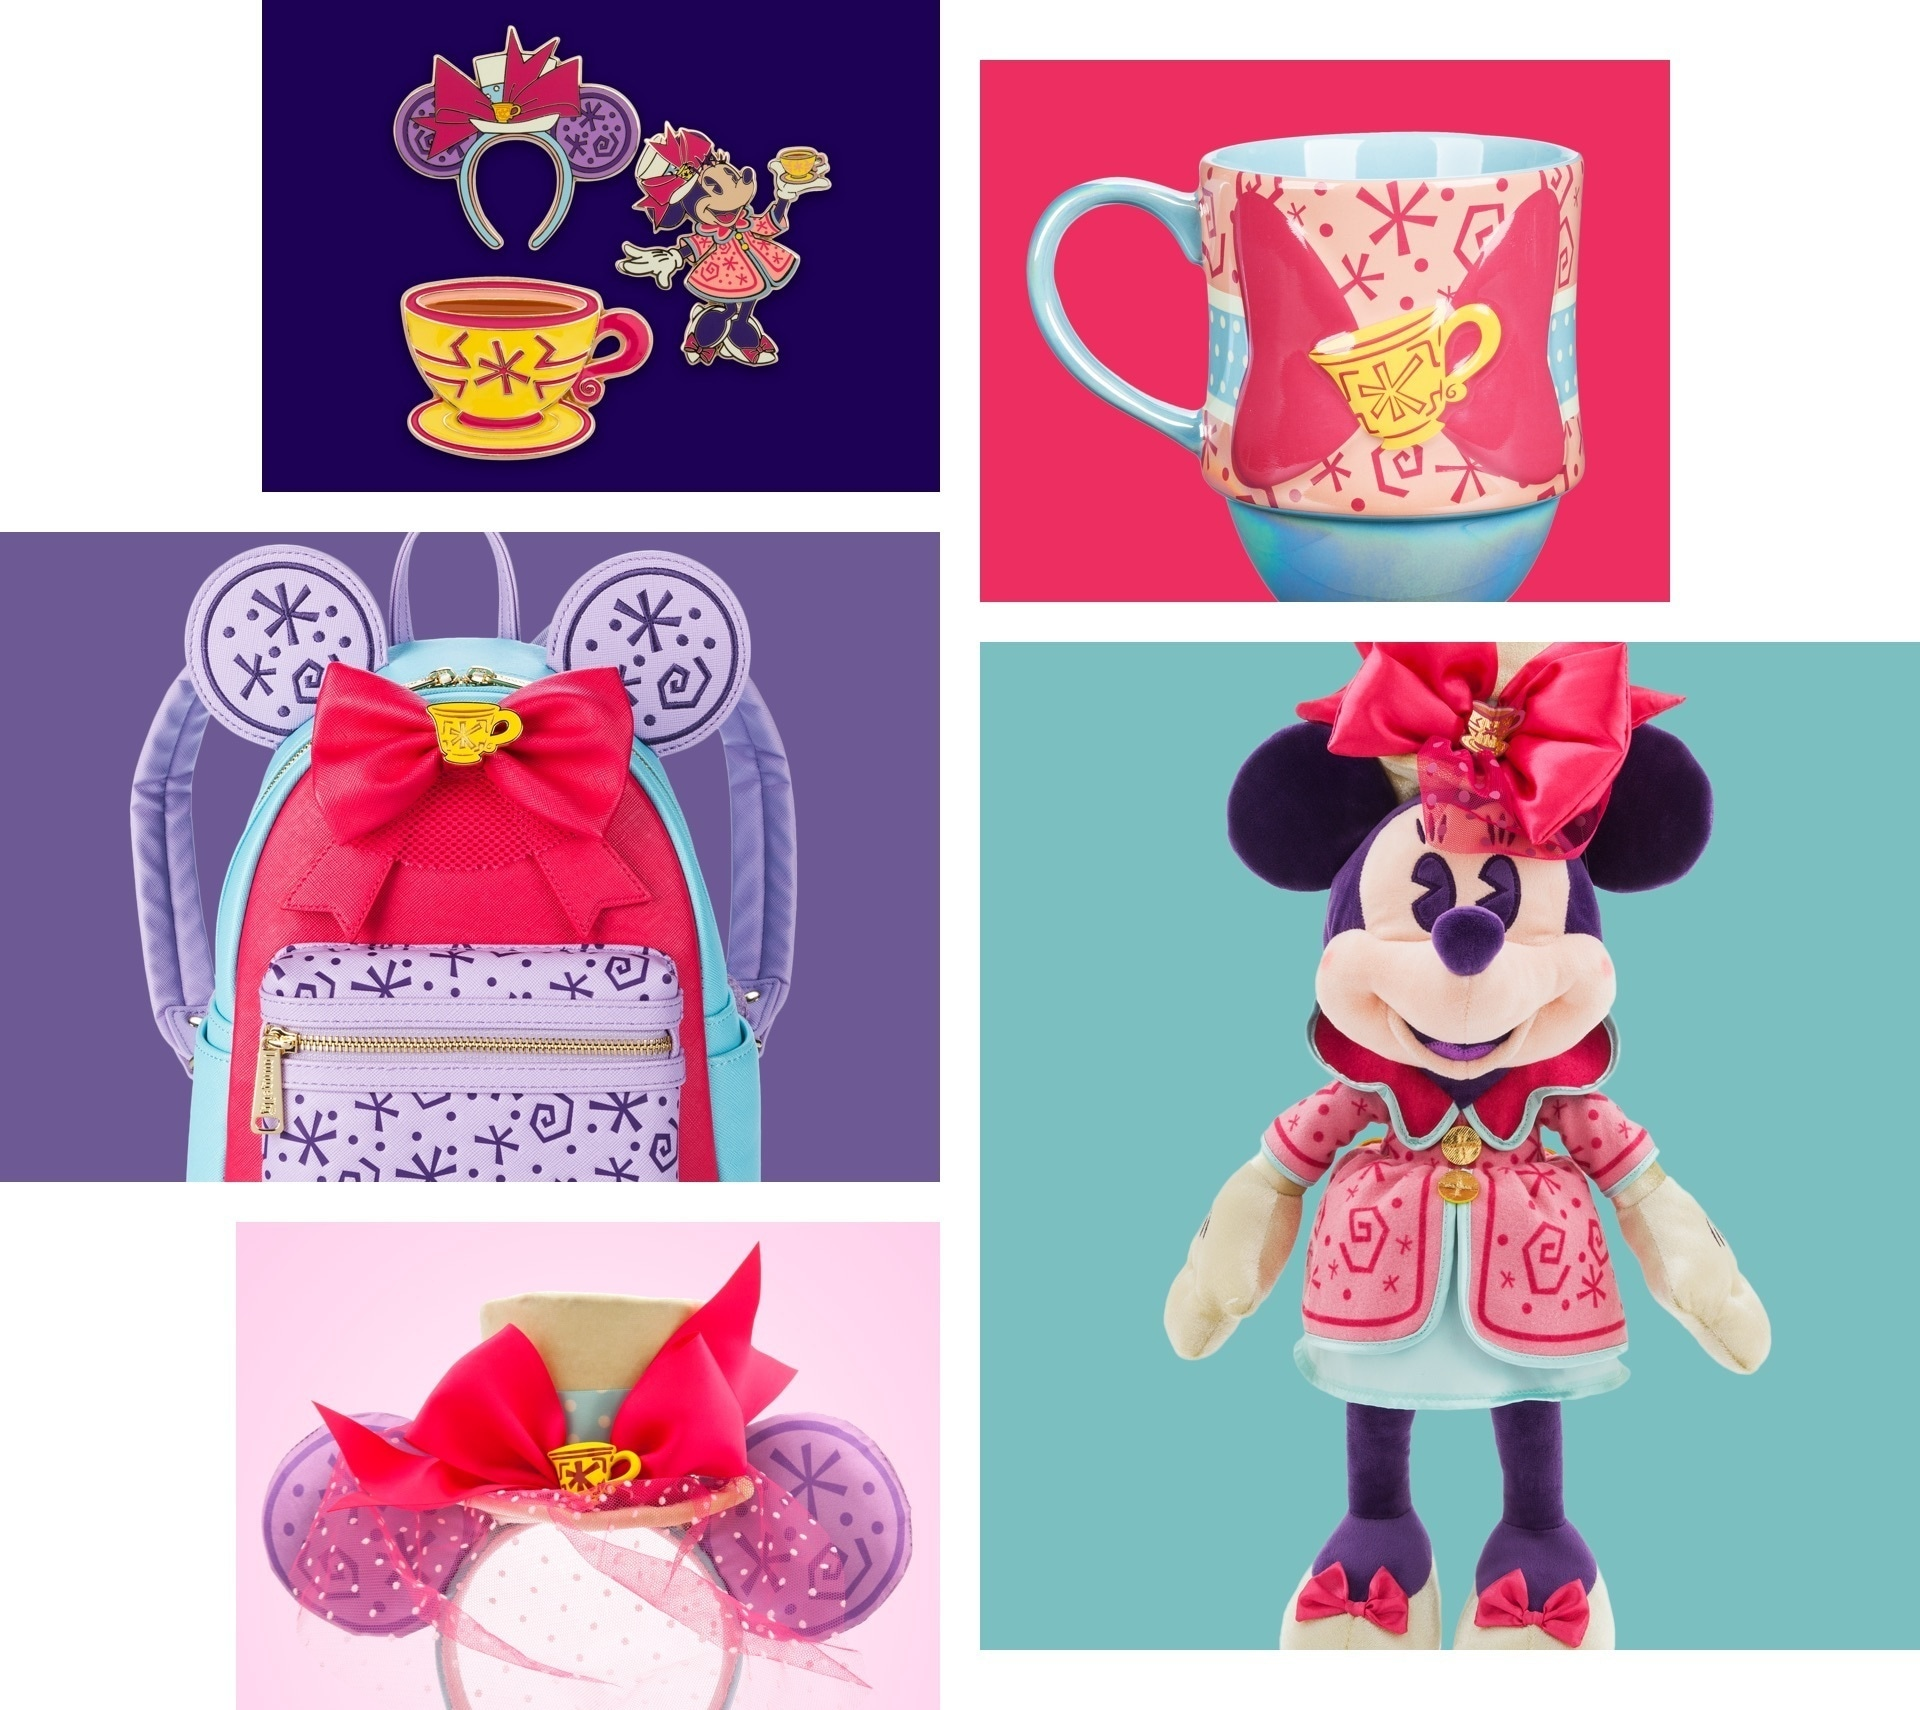 The Minnie Mouse Main Attraction March collection including a Minnie plush, rucksack, mug and pinset, all styled around the Space Mountain attraction at Disney Parks.